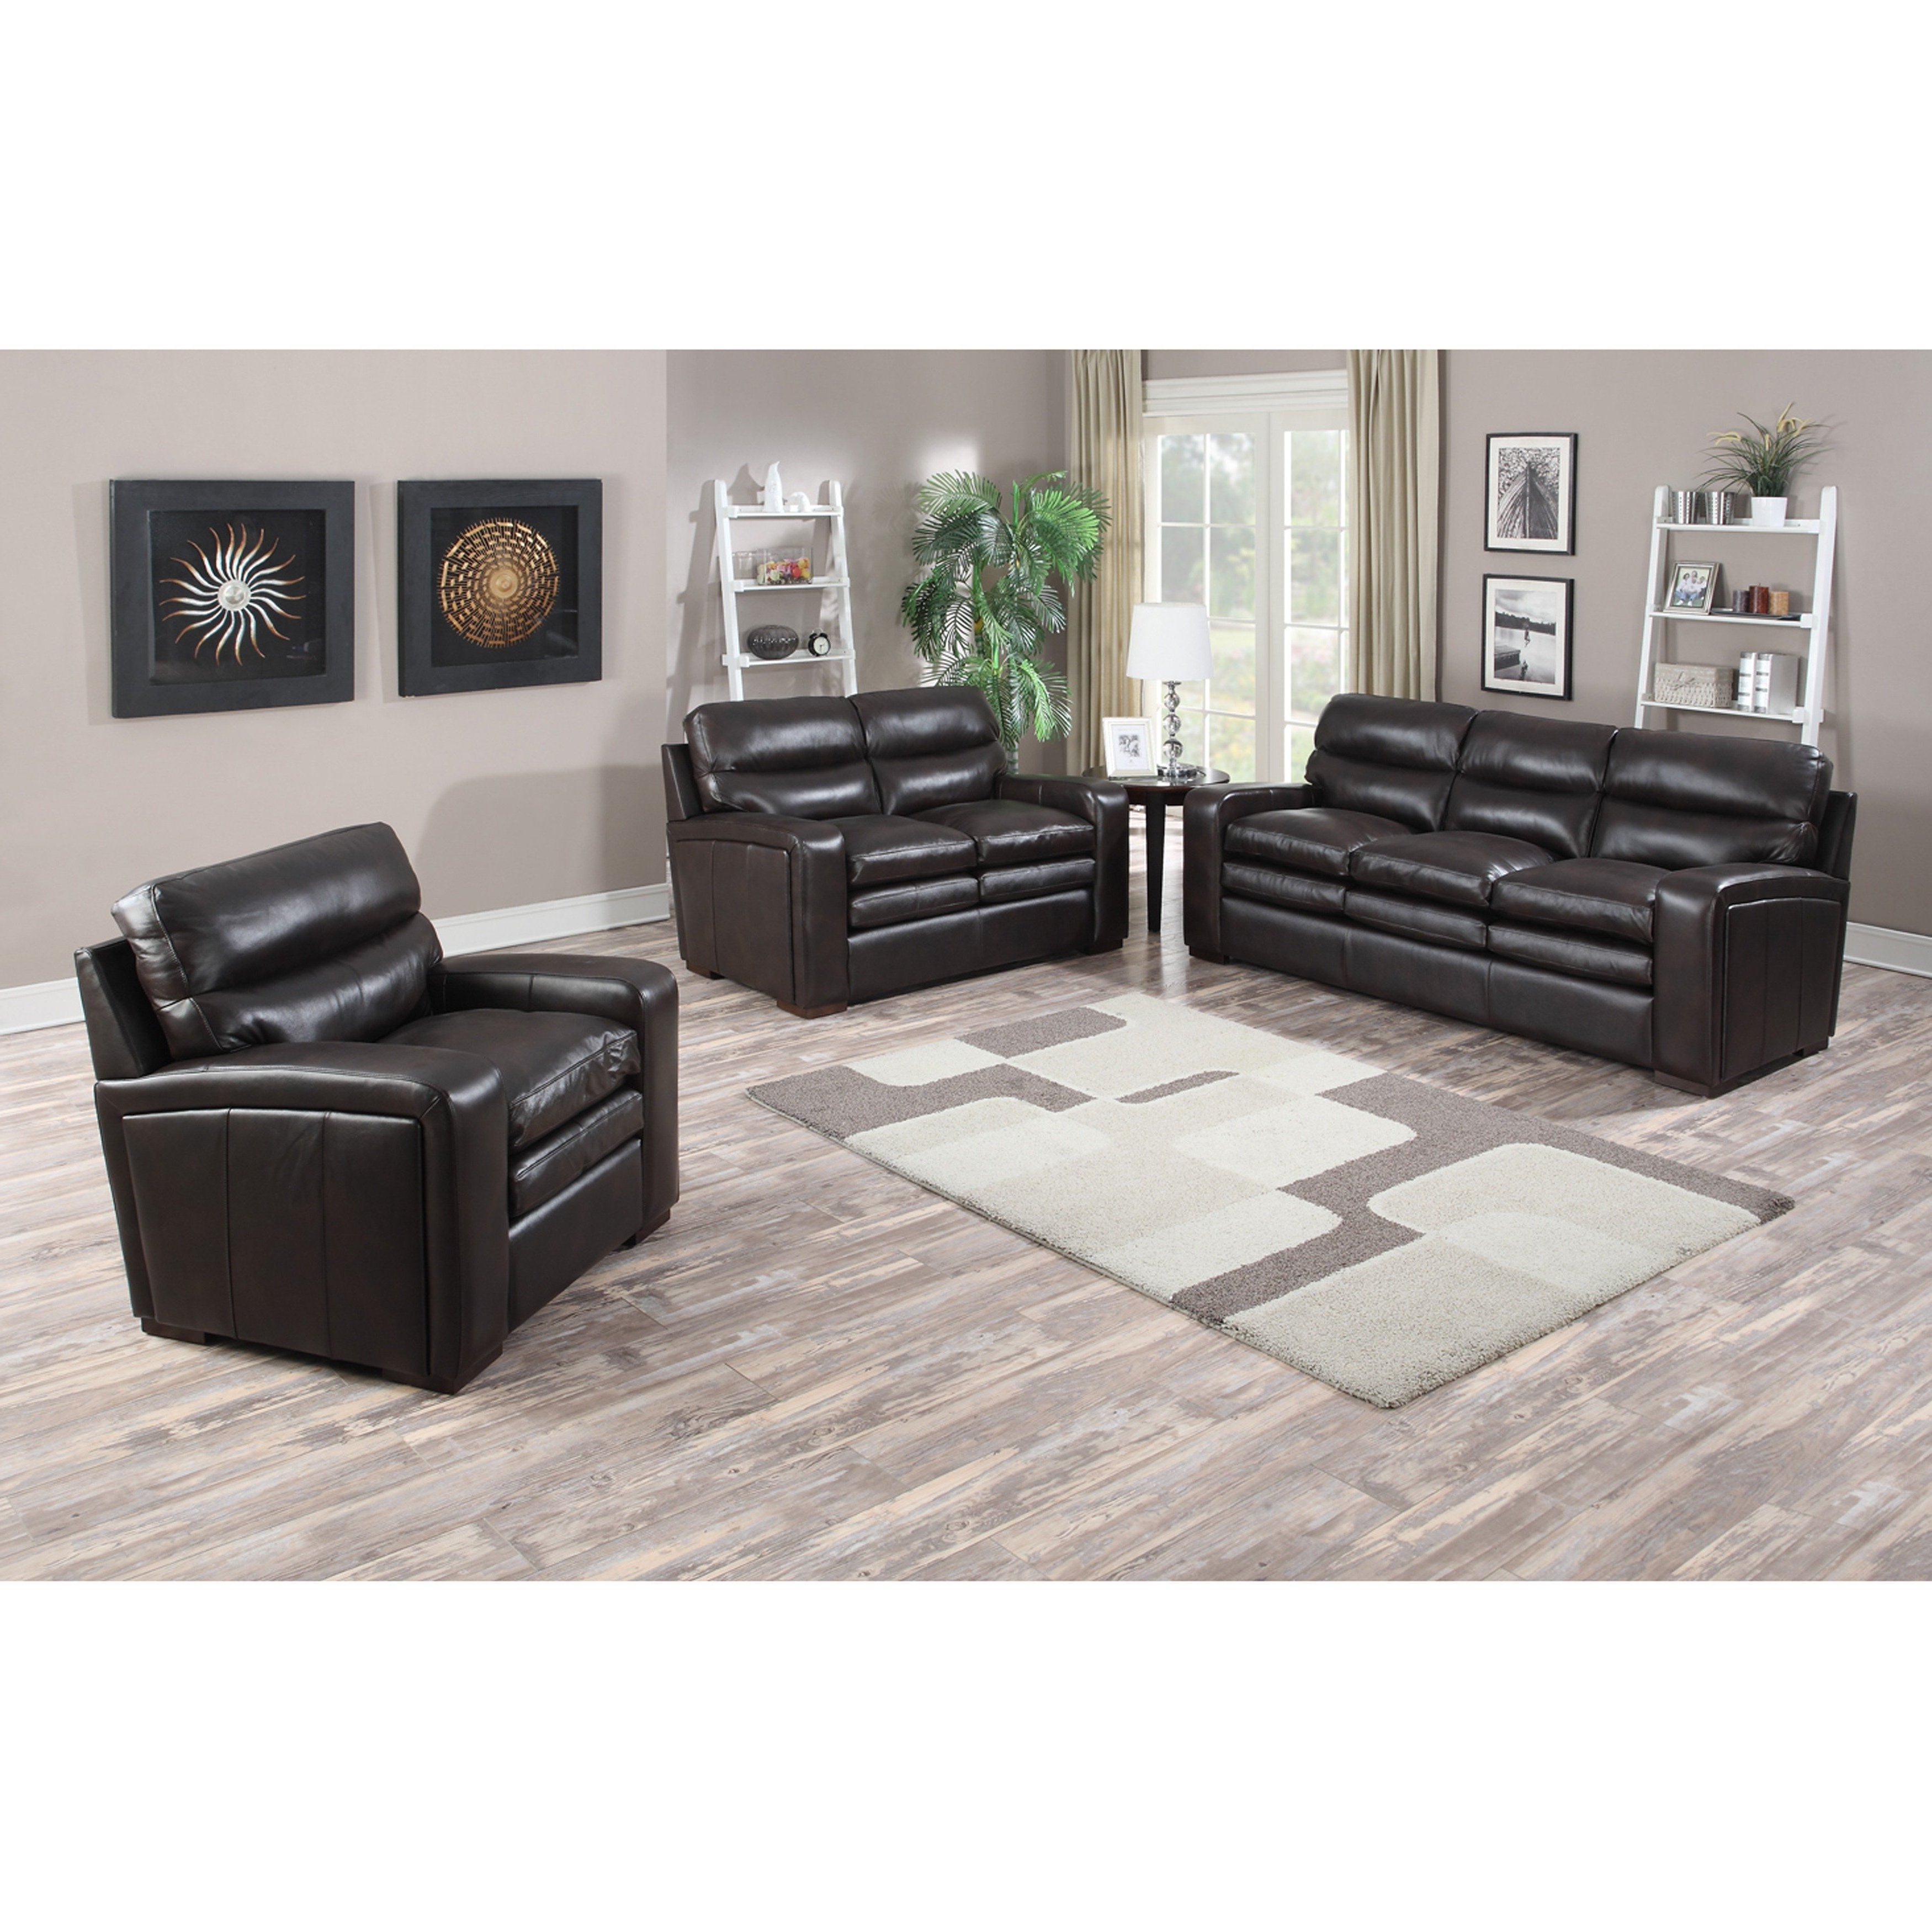 Shop Mercer Dark Brown Italian Leather Sofa, Loveseat And Chair Pertaining To Best And Newest Mercer Foam Oversized Sofa Chairs (Gallery 16 of 20)